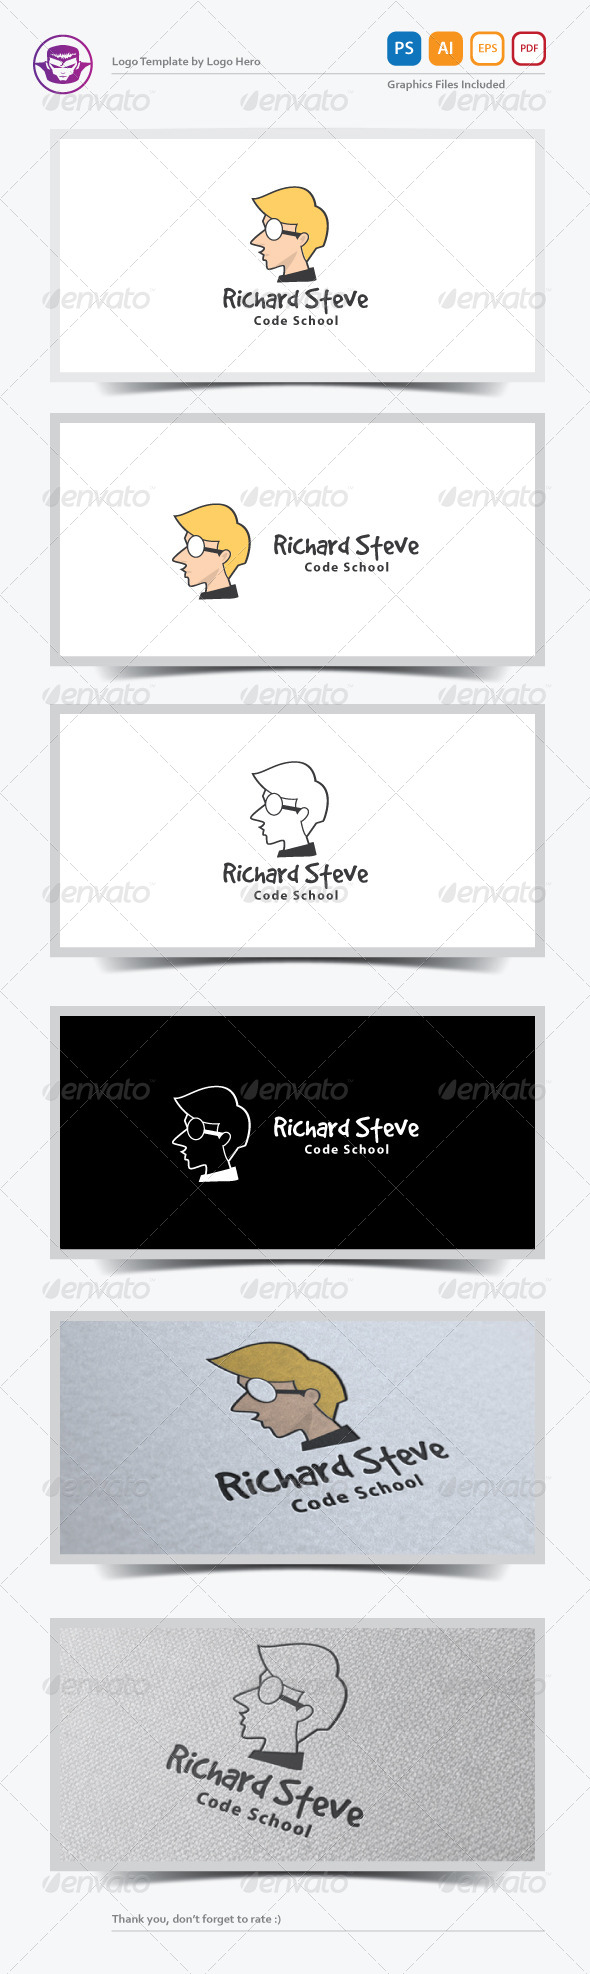 Personal Brand Logo Template - Humans Logo Templates